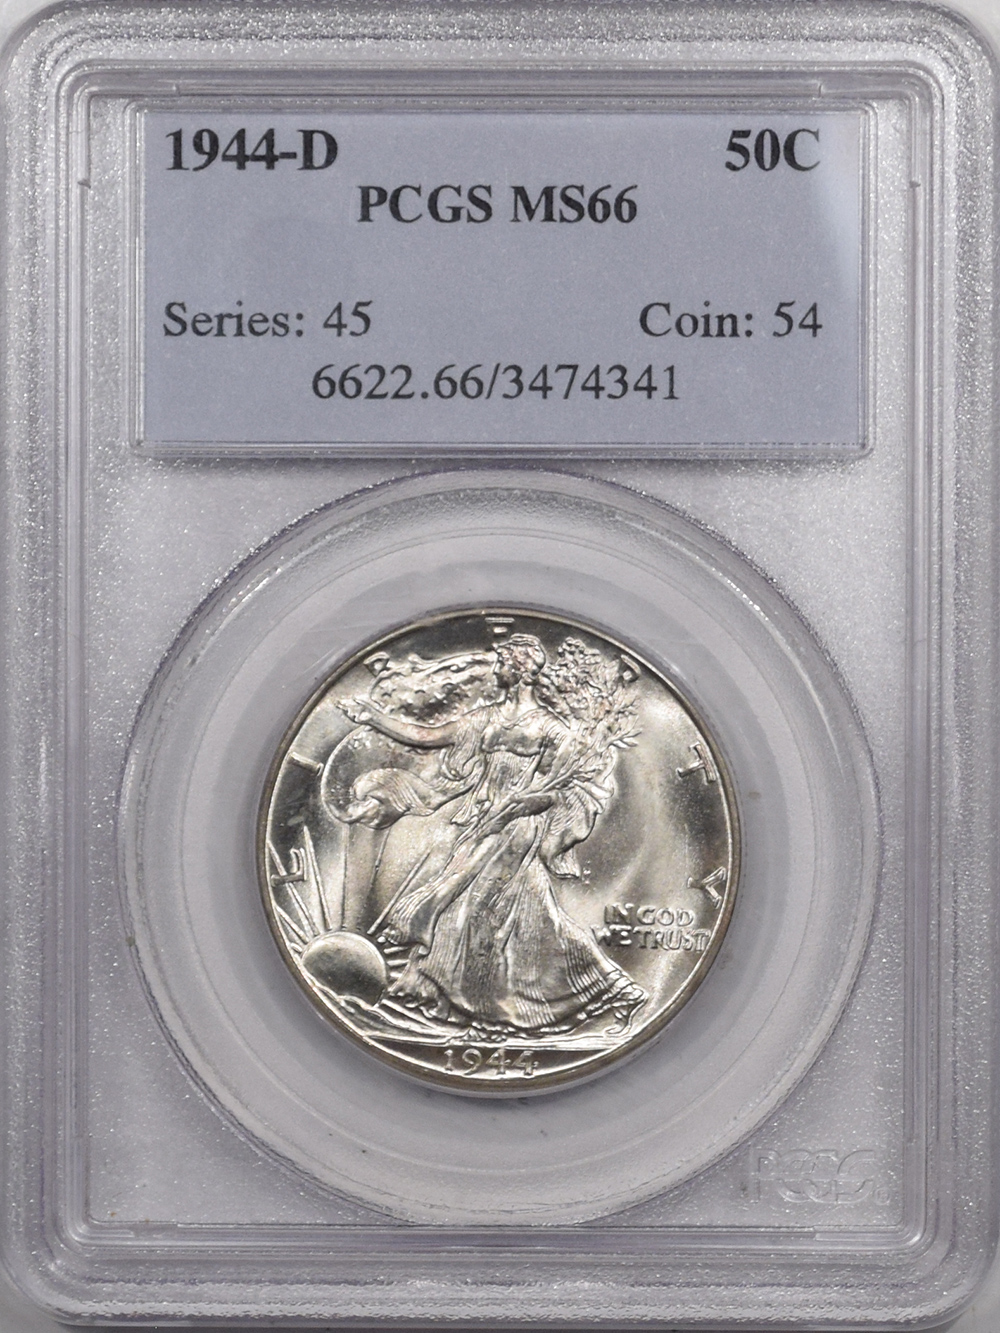 New Certified Coins 1944-D WALKING LIBERTY HALF DOLLAR – PCGS MS-66, SUPER PQ!